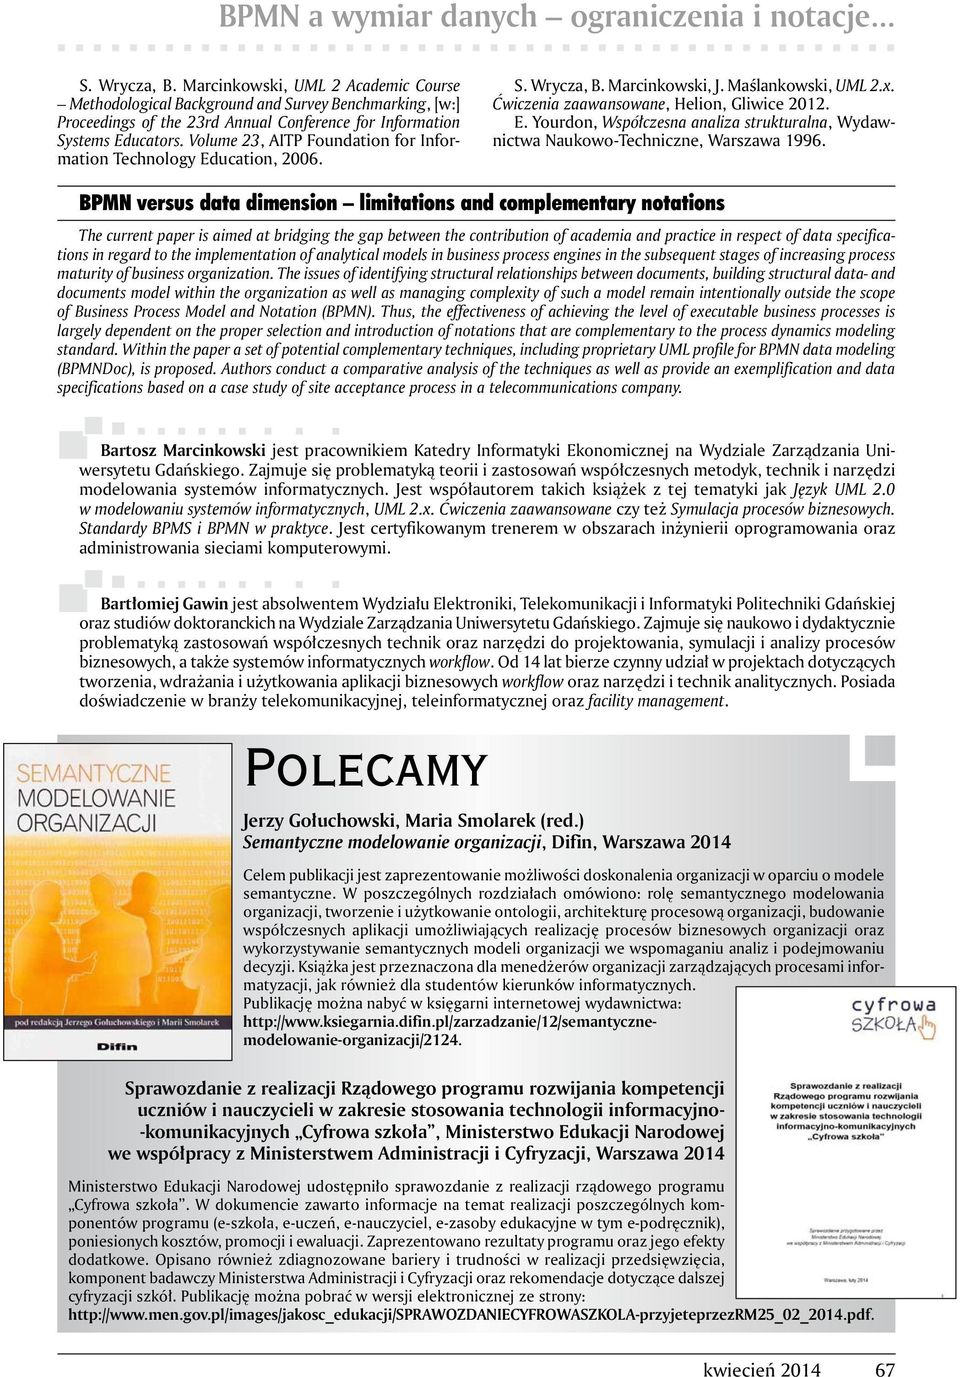 Volume 23, AITP Foundation for Information Technology Education, 2006. S. Wrycza, B. Marcinkowski, J. Maślankowski, UML 2.x. Ćwiczenia zaawansowane, Helion, Gliwice 2012. E. Yourdon, Współczesna analiza strukturalna, Wydawnictwa Naukowo-Techniczne, Warszawa 1996.